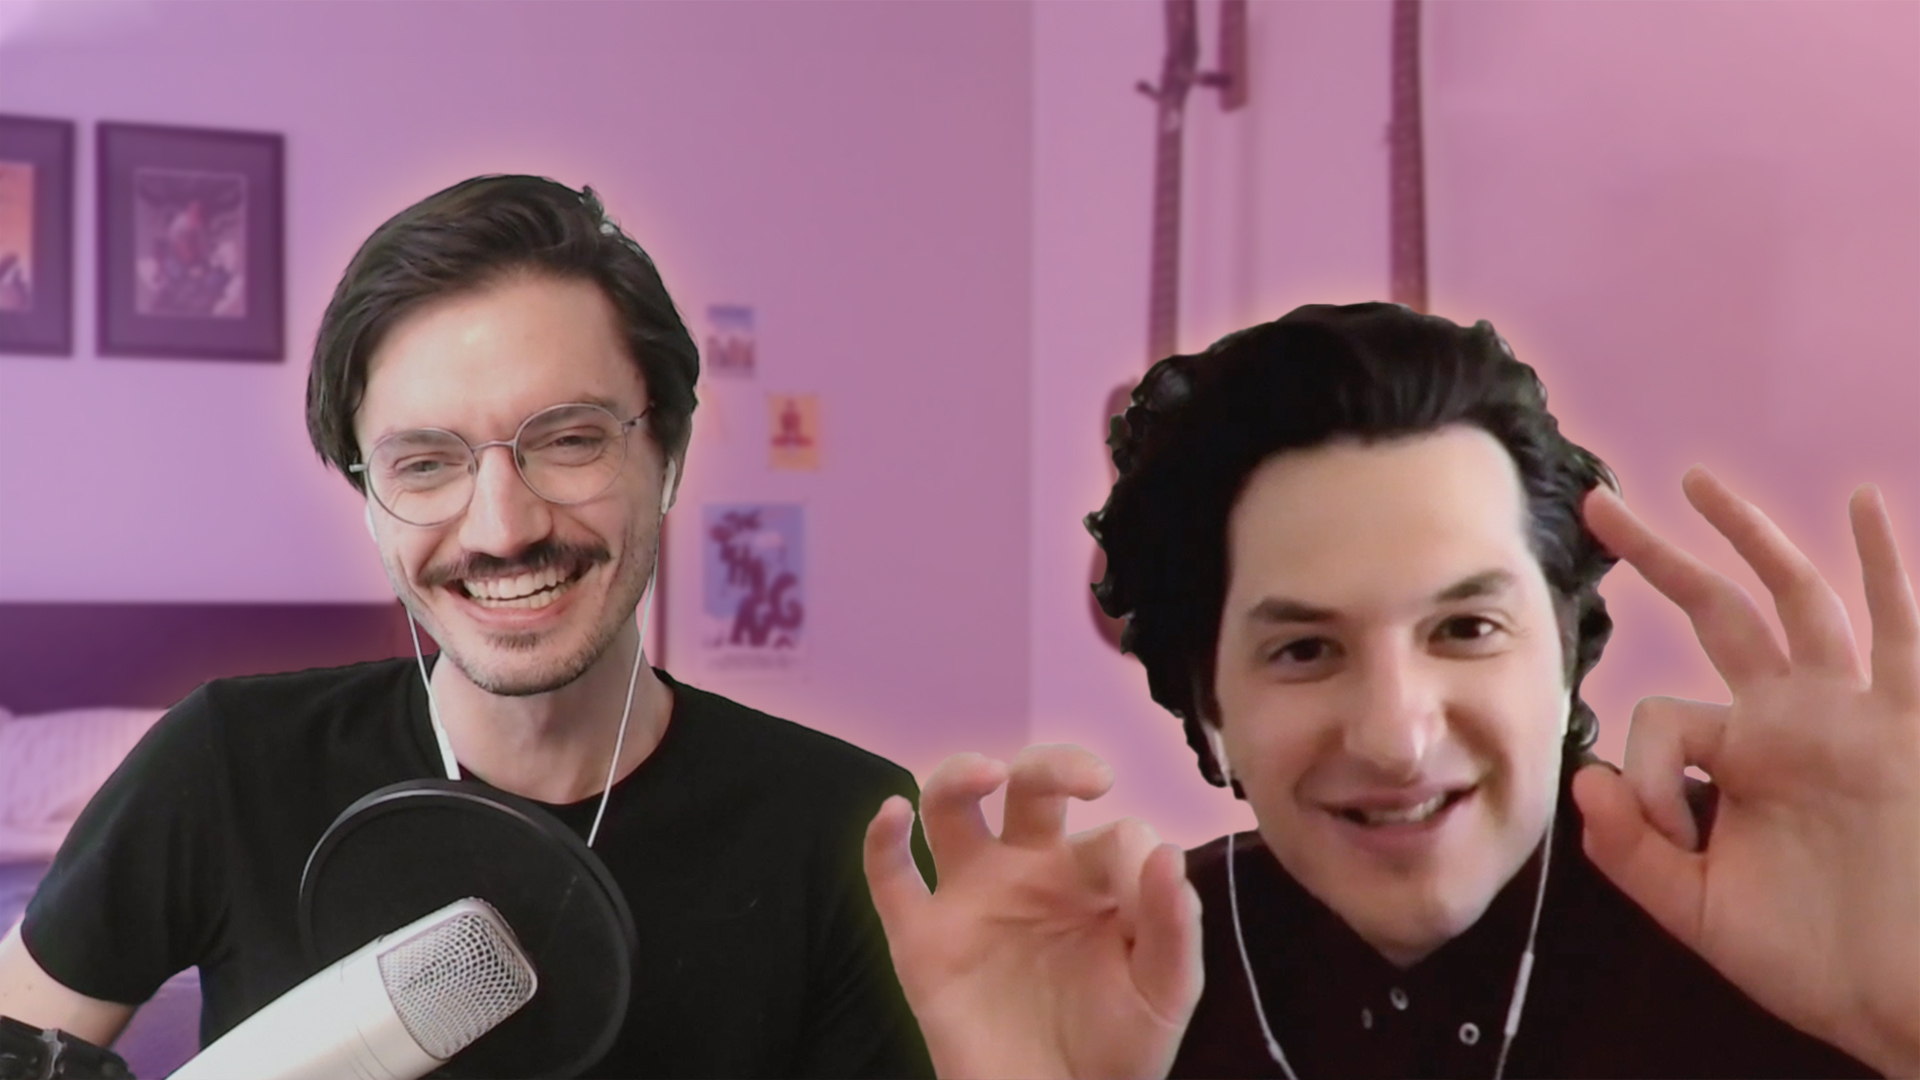 Ben Schwartz and Patrick Gill have a chat on Zoom